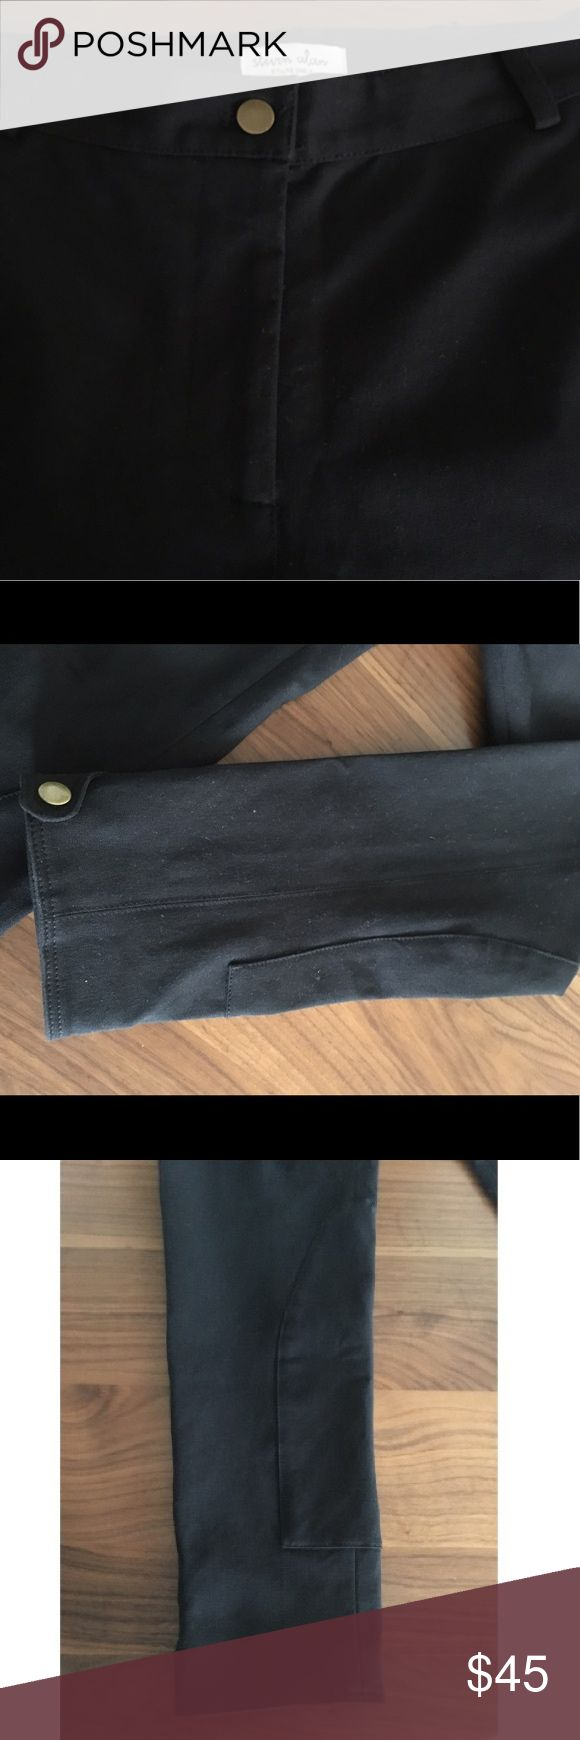 """SALE! Steven Alan Riding Pant, Only In-Store, SZ 6 ON SALE! Fitted Steven Alan riding Jodhpur-like riding pant with brass buttons at cuffs. Only available at the store. Black stretch fabric. Inseam 25"""". Never worn. Like brand new. Come from a clean, non-smoking home. Steven Alan Pants Ankle & Cropped"""